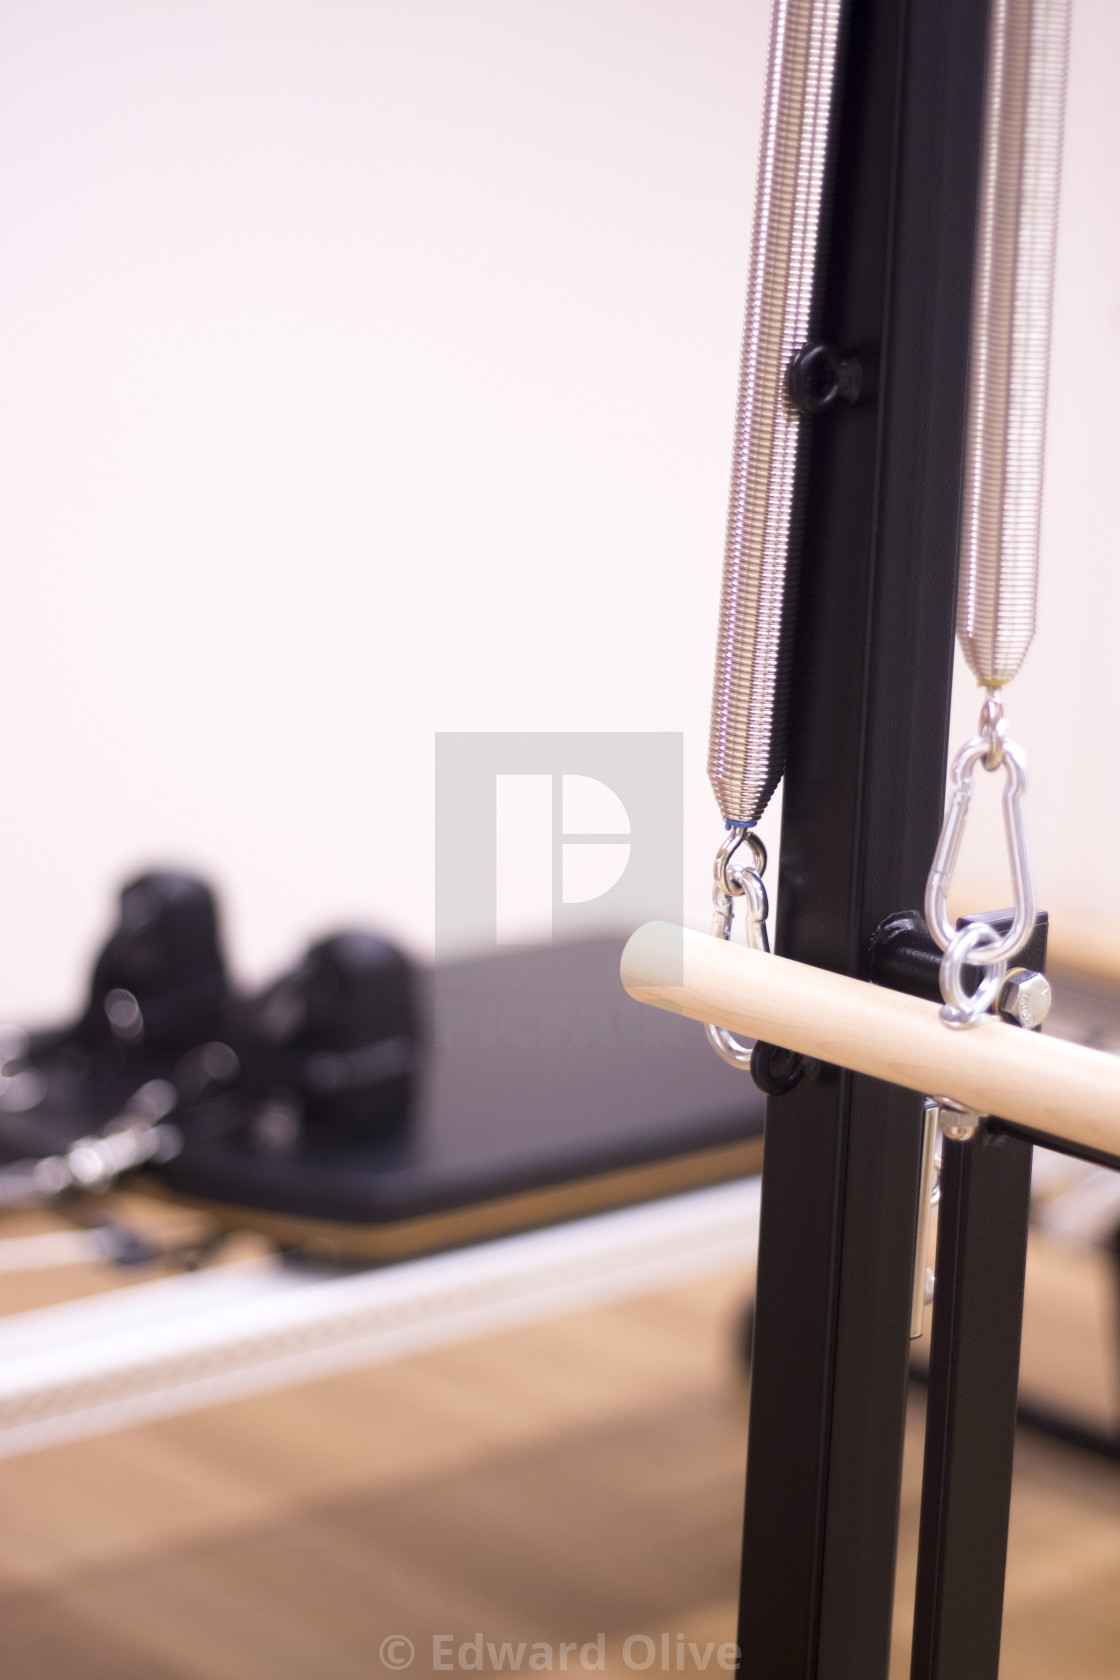 """Pilates studio gym equipment"" stock image"